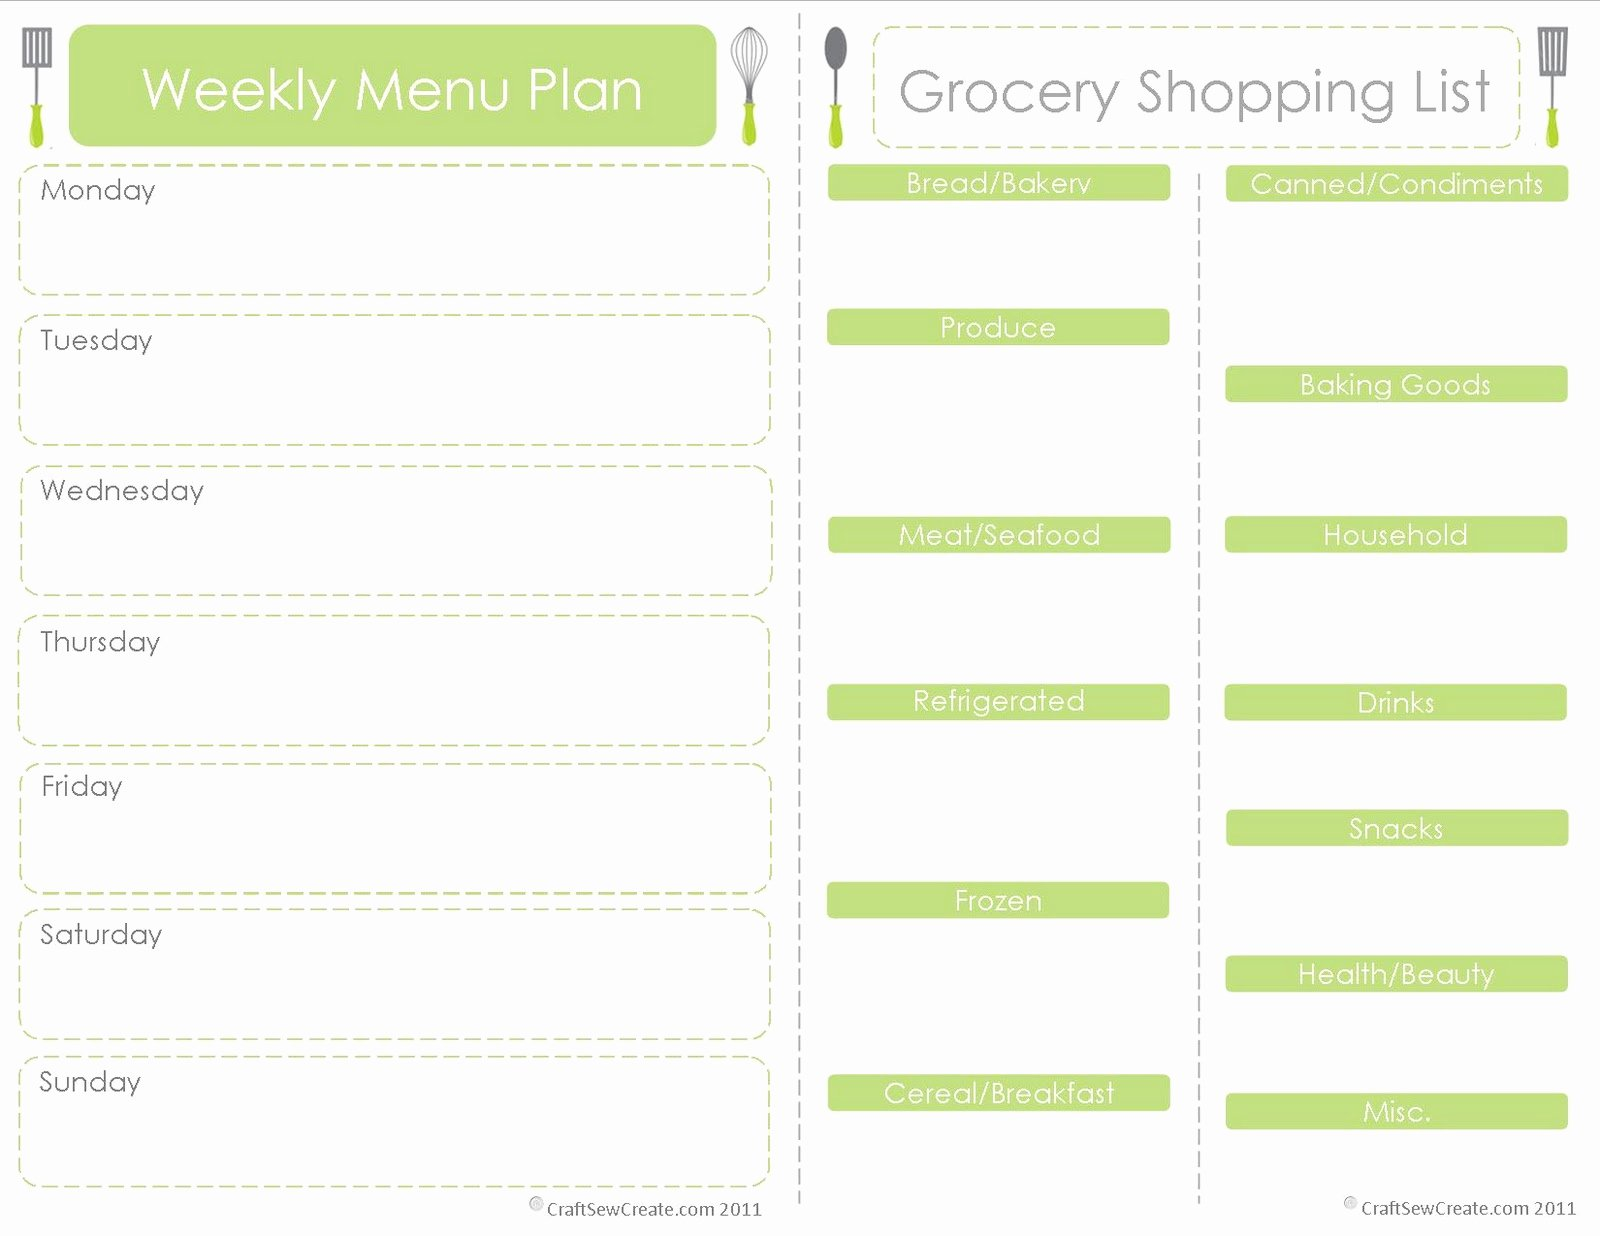 Weekly Menu Template Word New Craft Sew Create Free Printable Menu Plan Shopping List